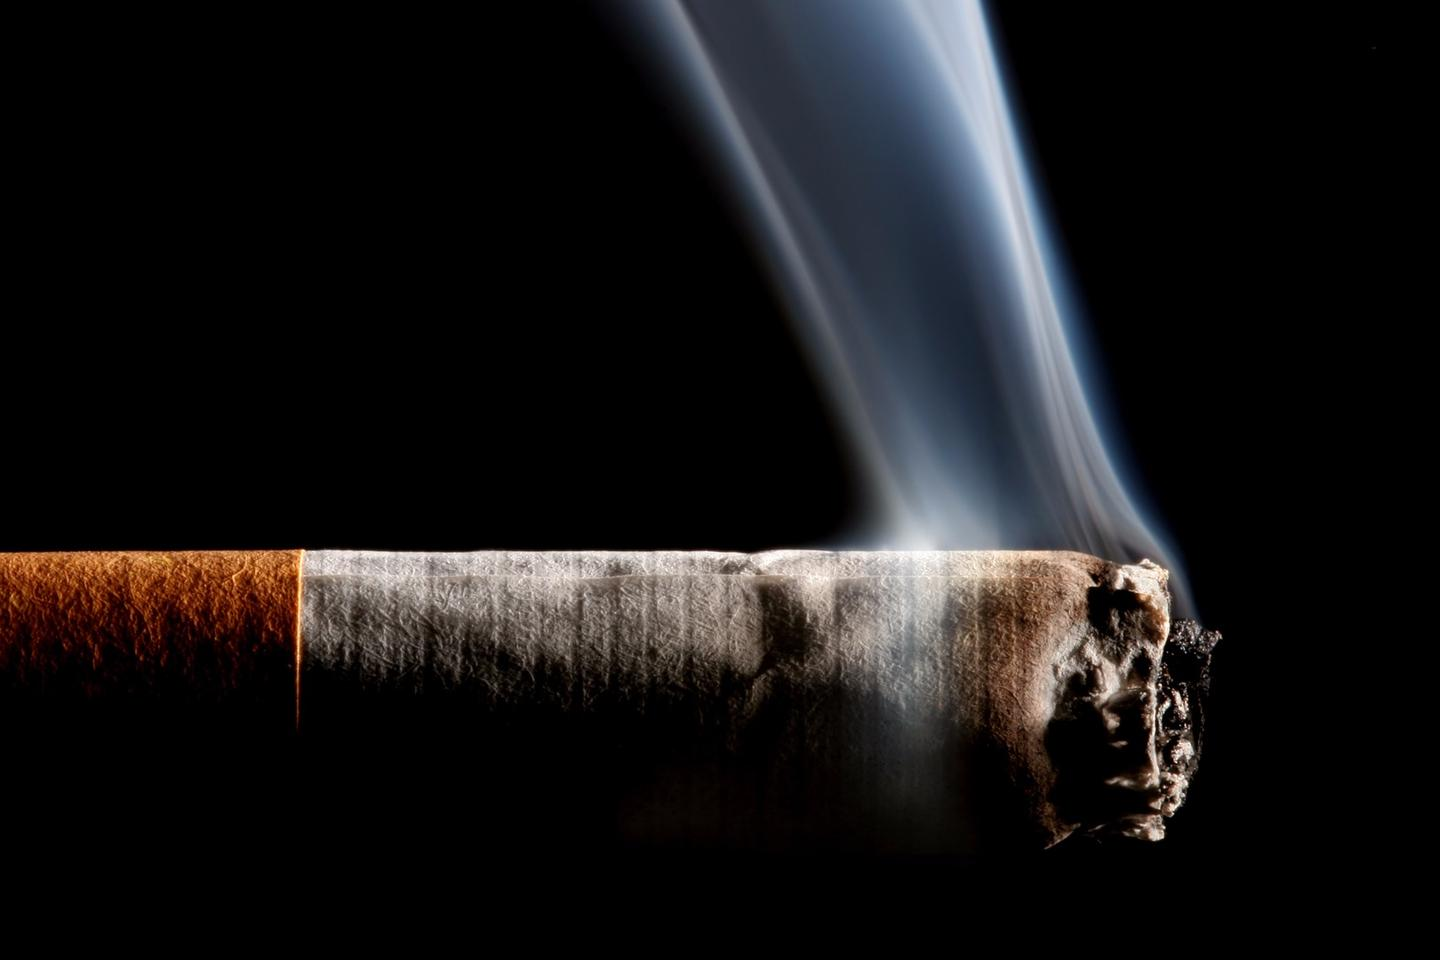 Belief regarding the nicotine content of cigarettes might influence the brain activity and cravings of smokers